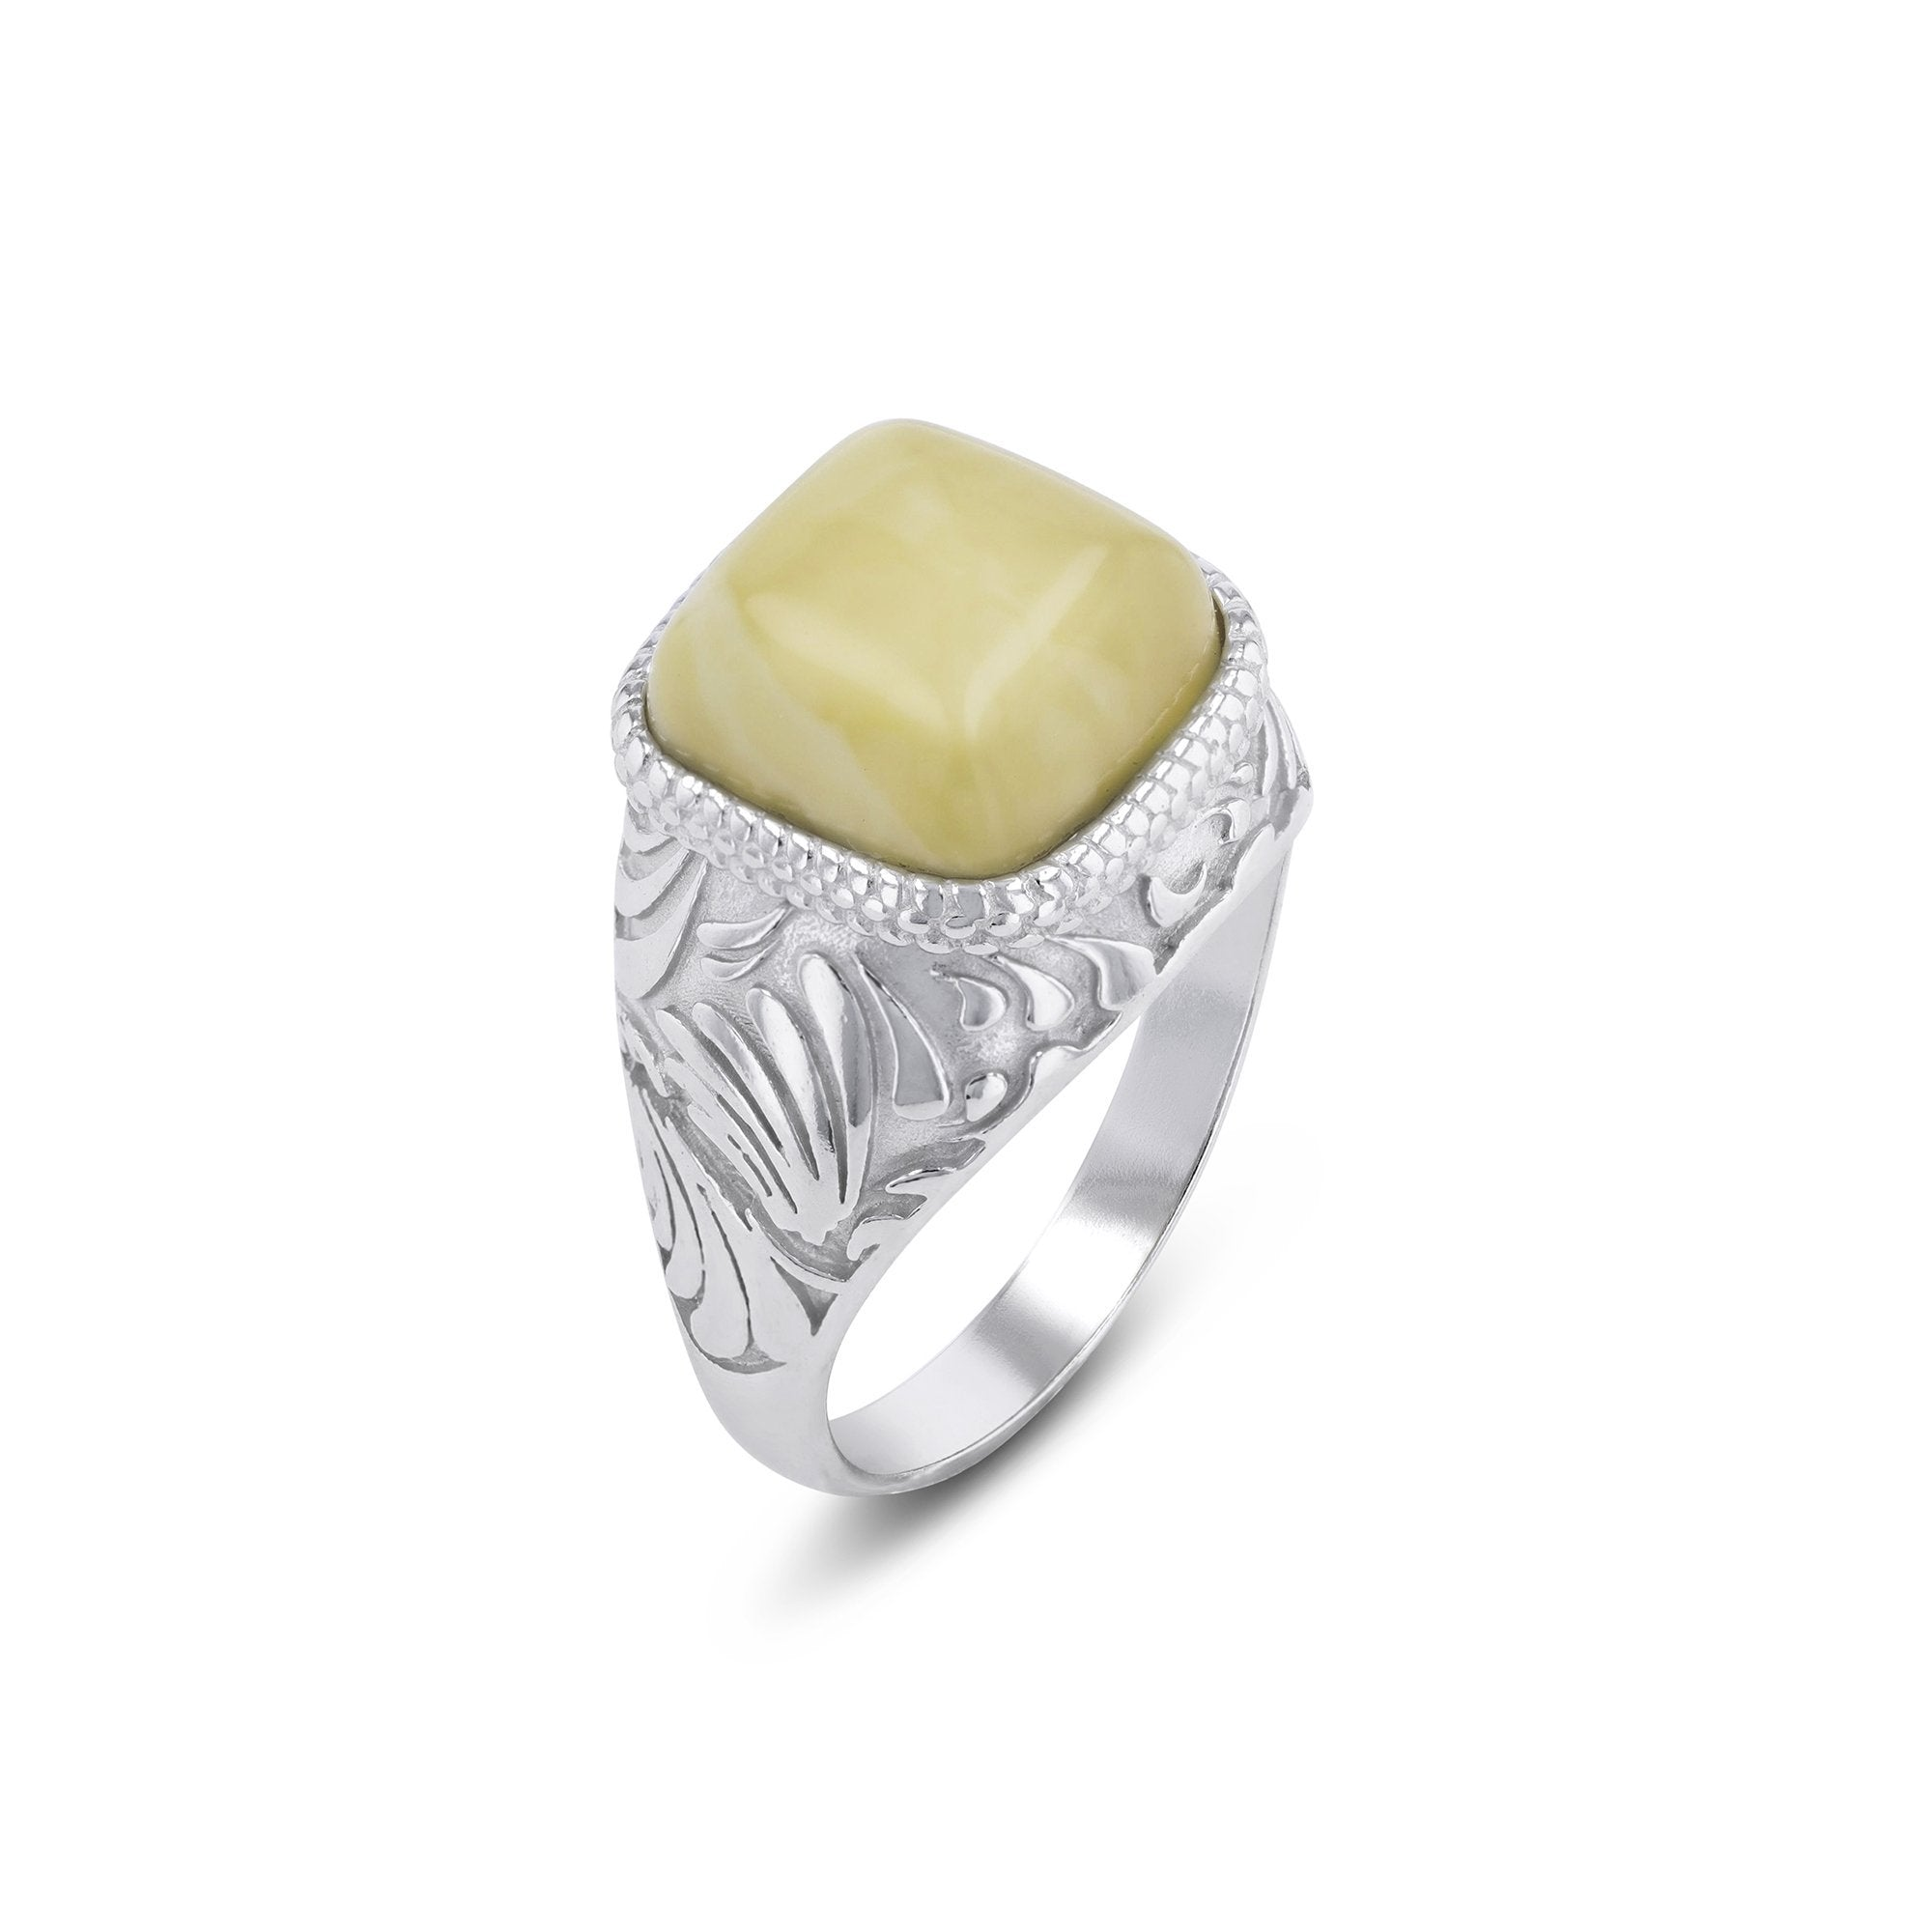 Hills Square Cut Antique Ring - Koraba